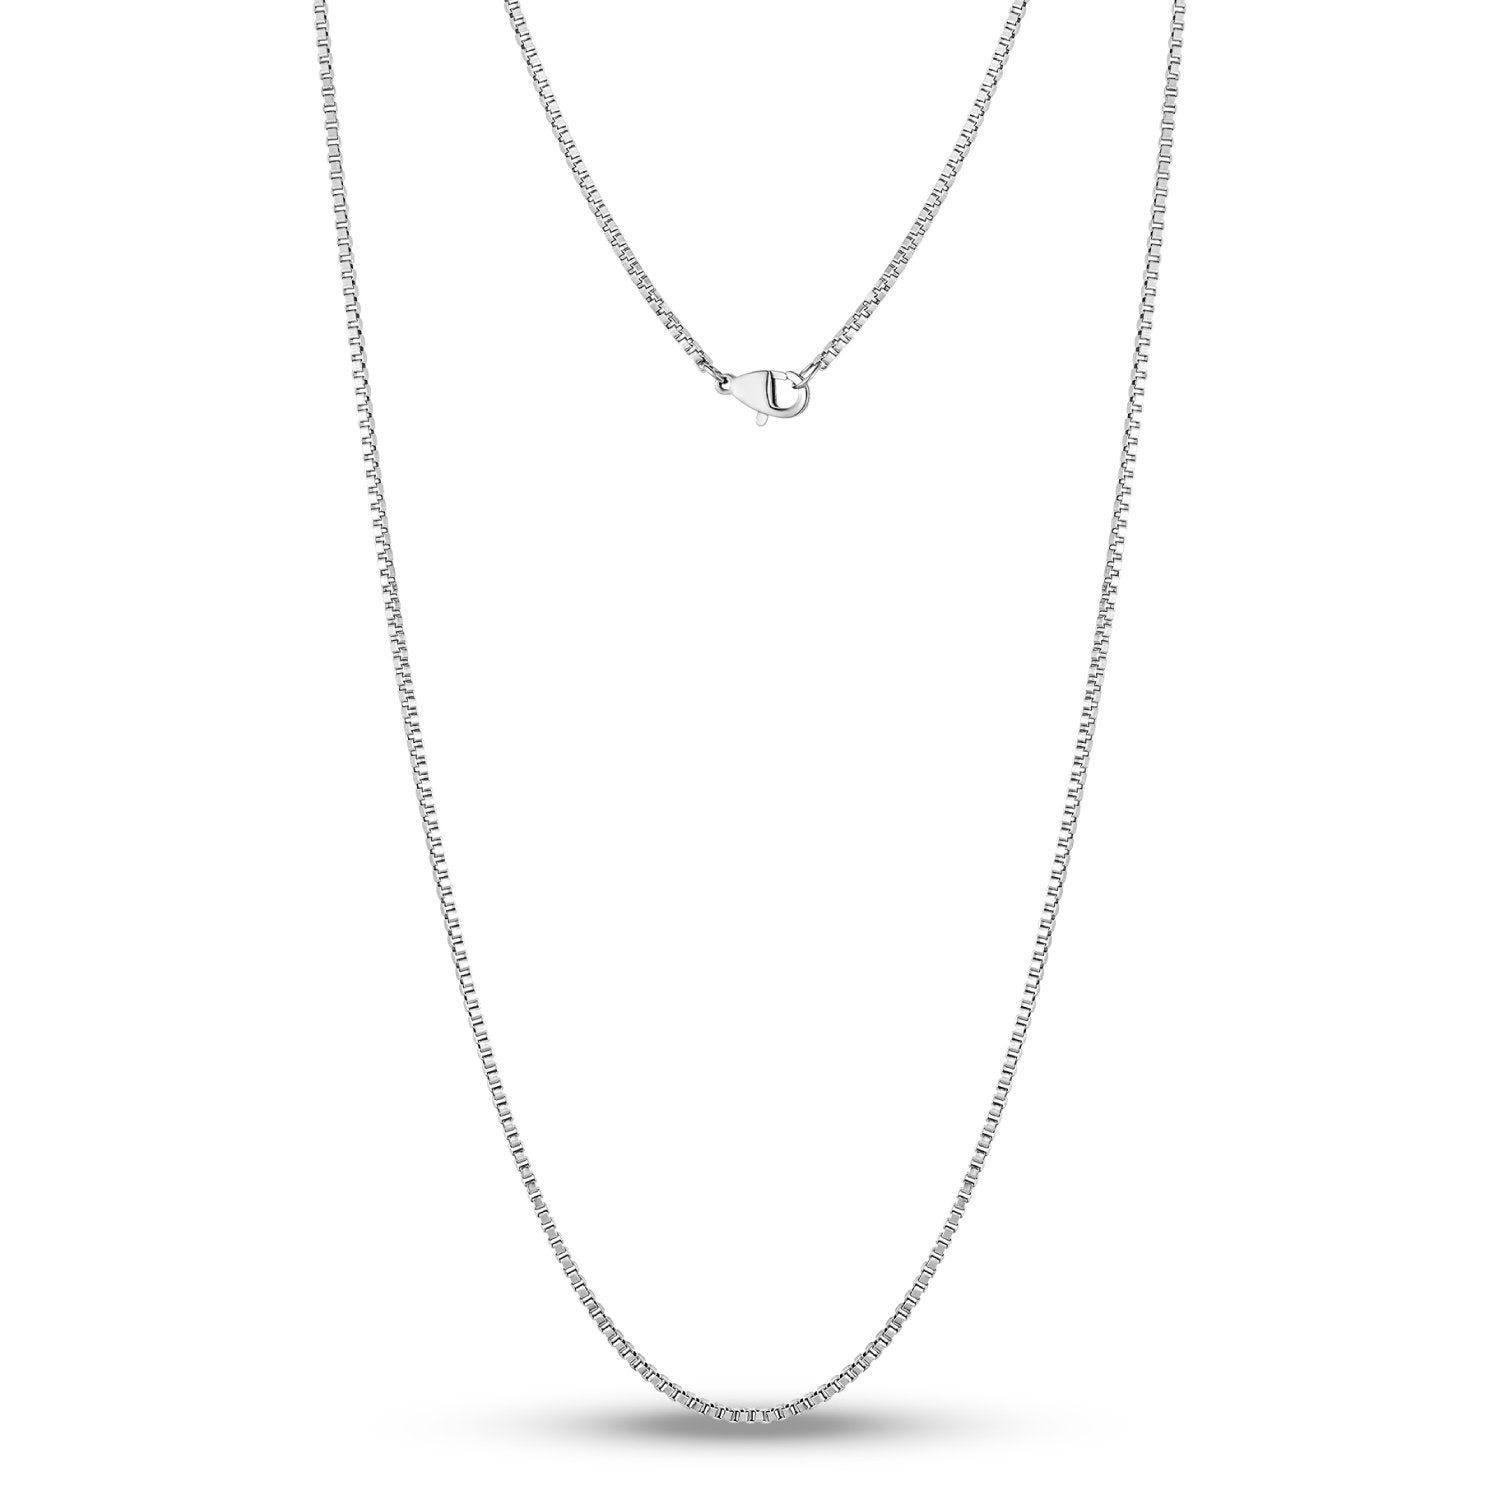 Unisex Necklaces - 1.5mm Thin And Dainty Steel Box Link Necklace